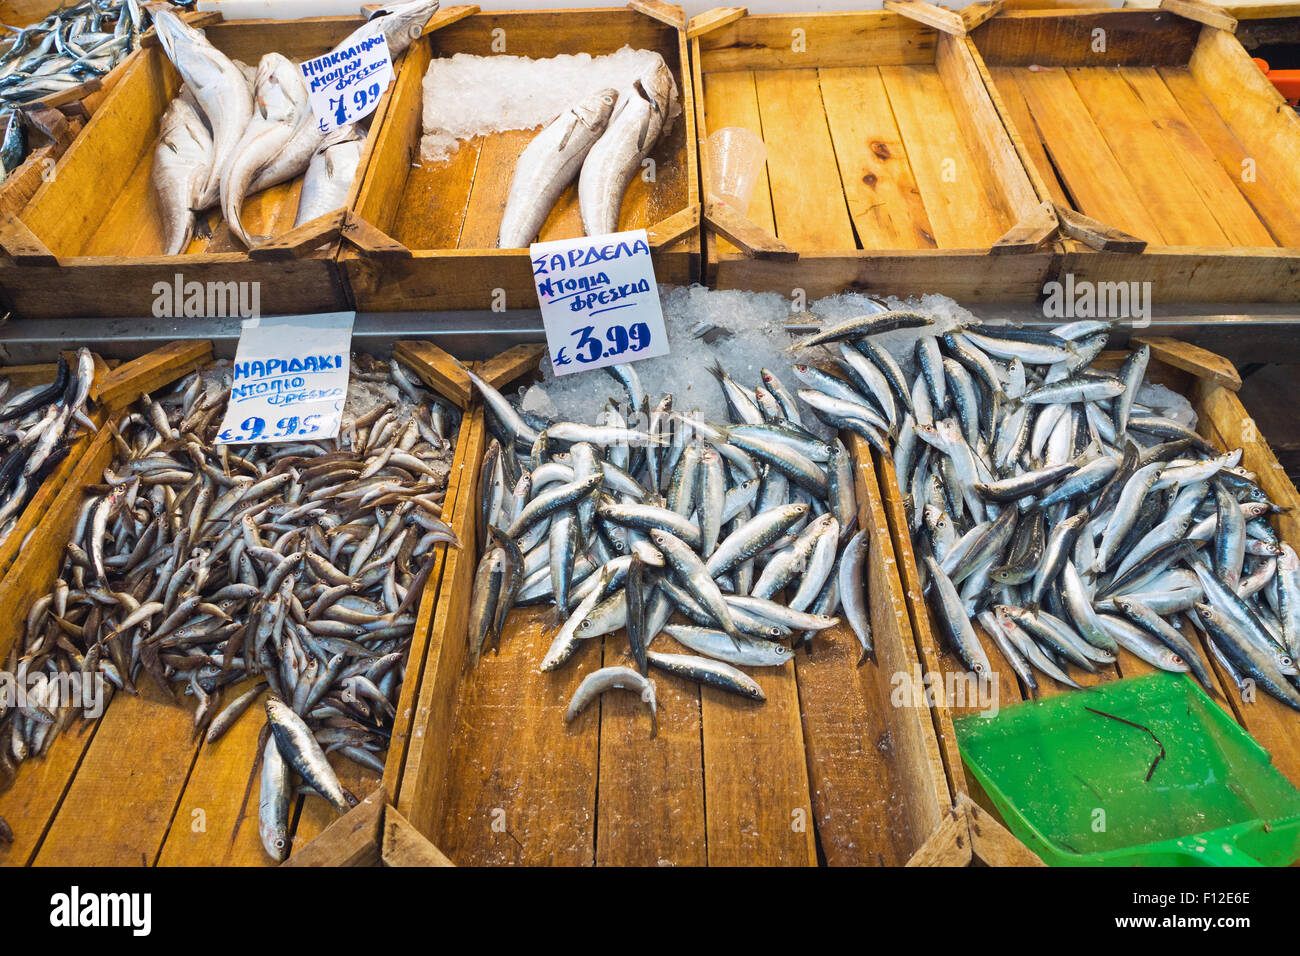 Different kinds of fish are sold at the fish market - Stock Image